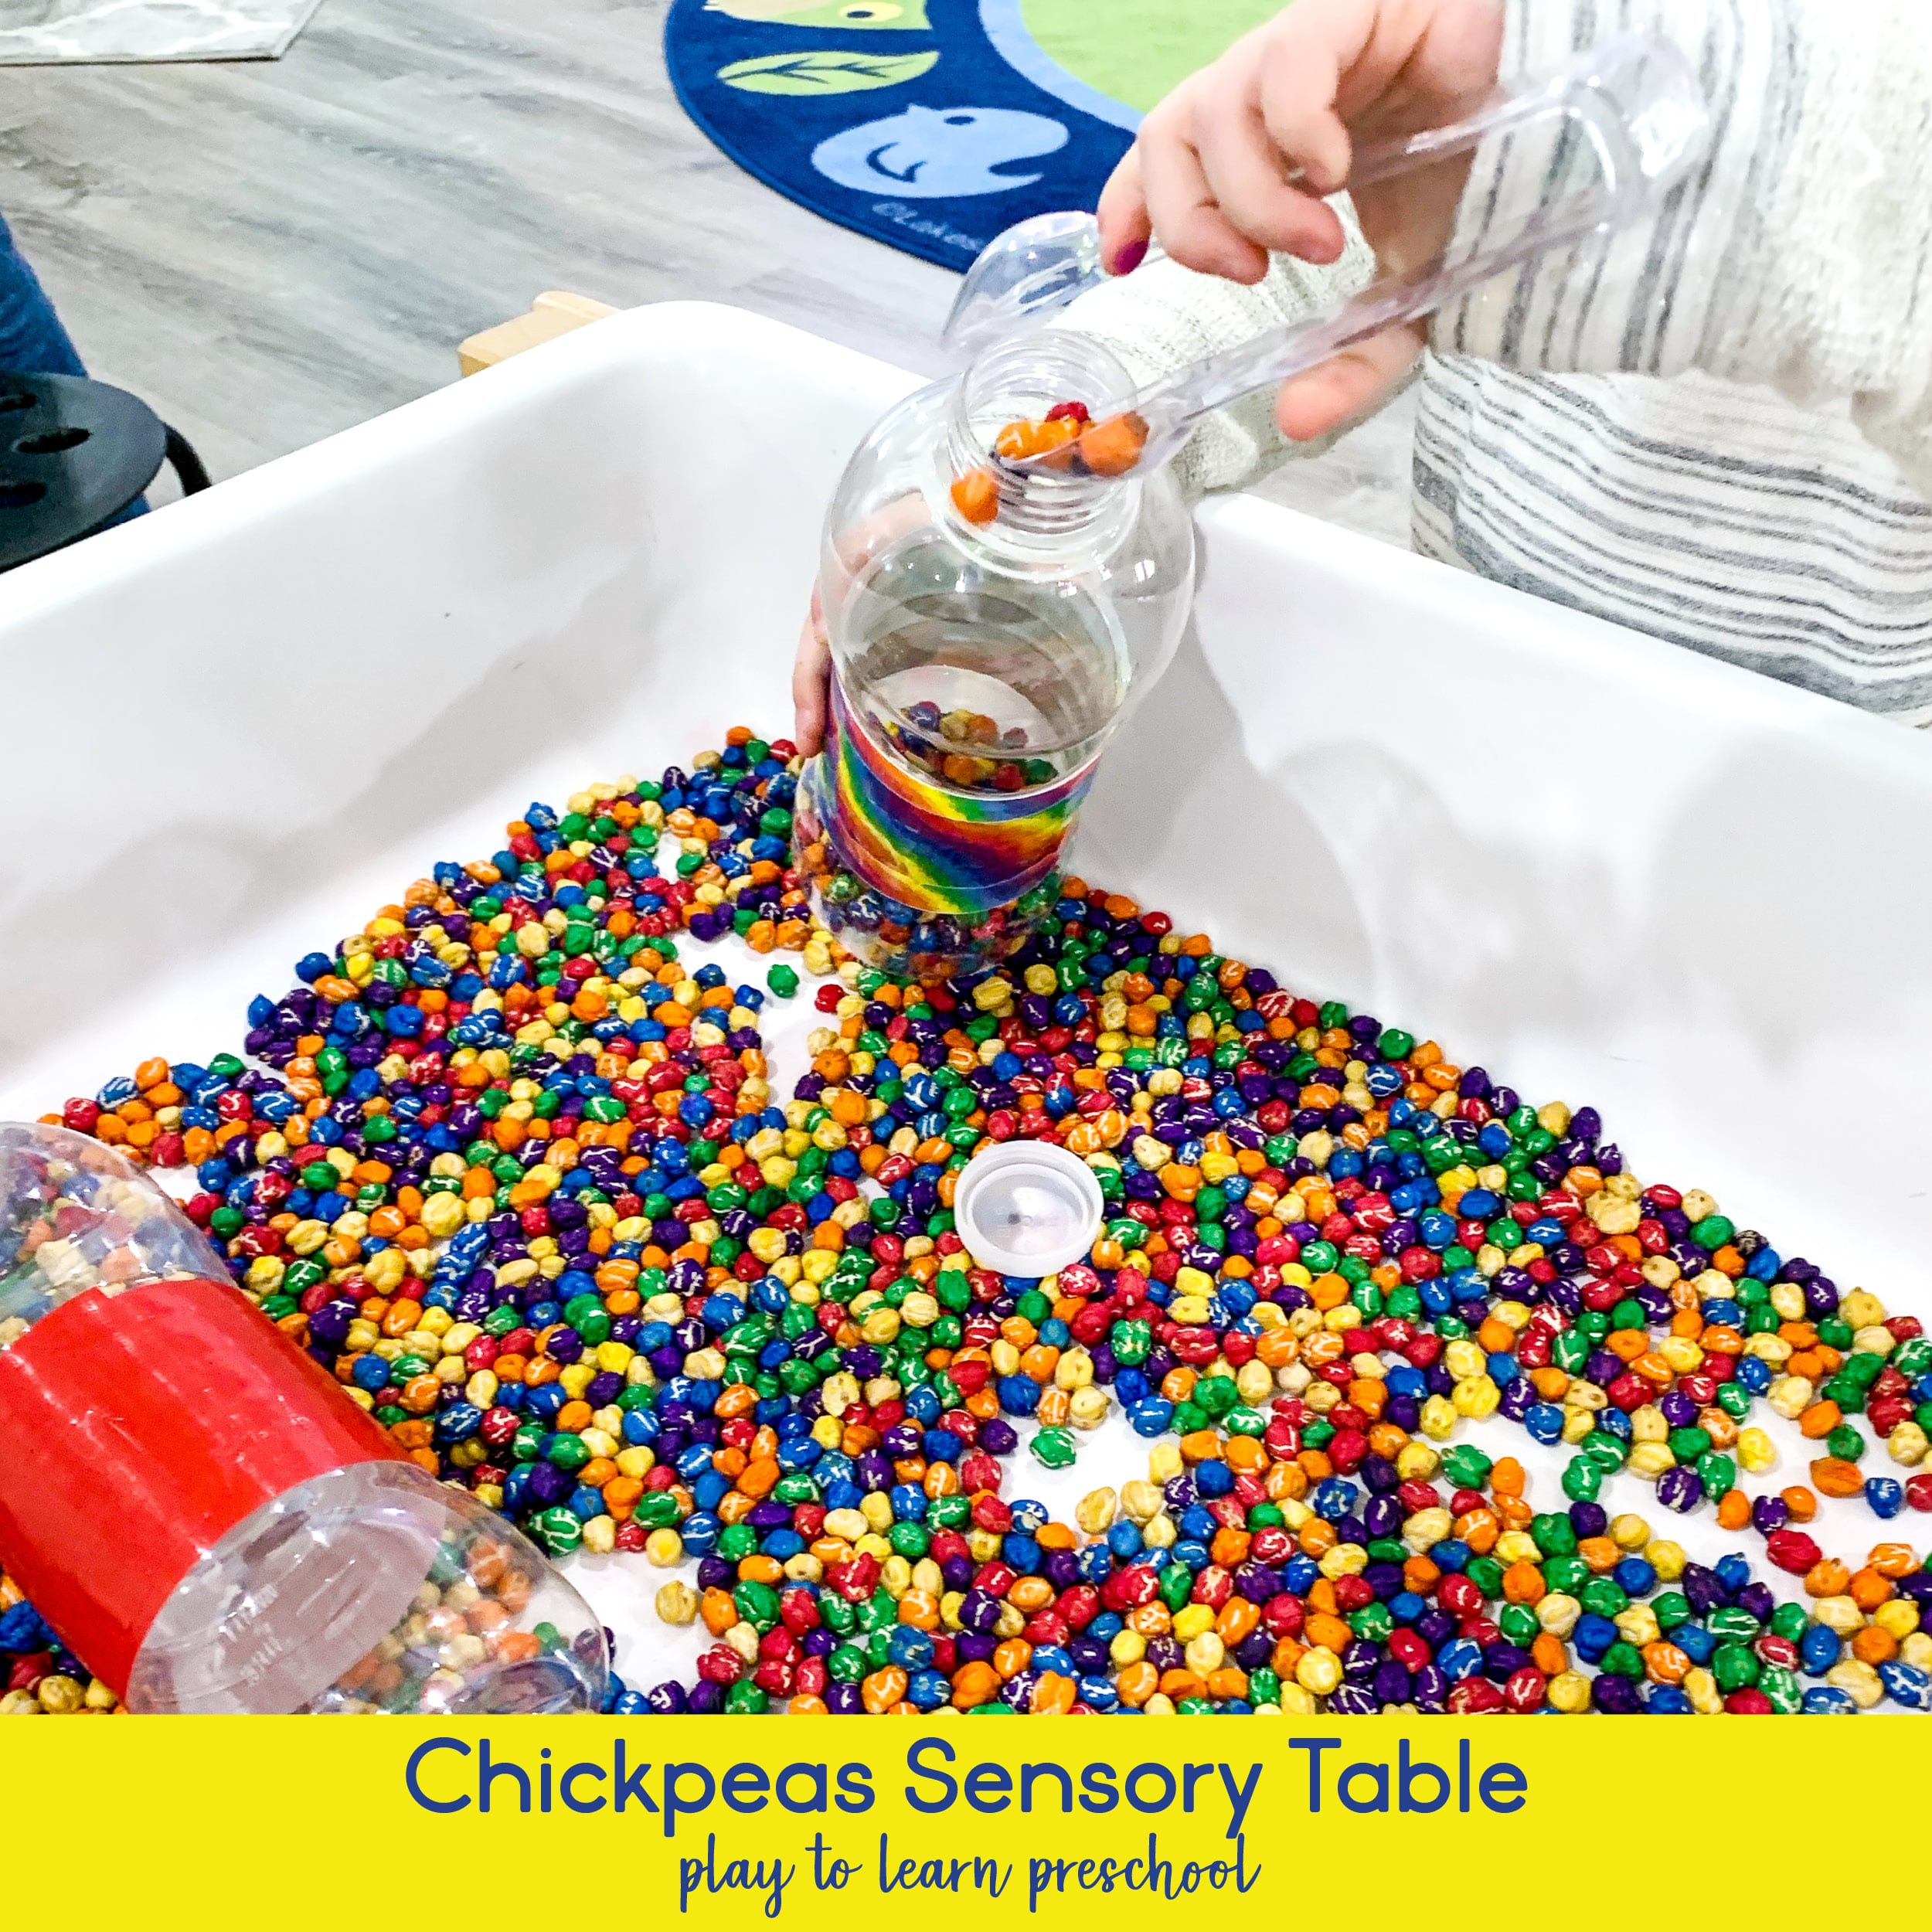 Chickpea Sensory Table Play Ideas for Preschoolers